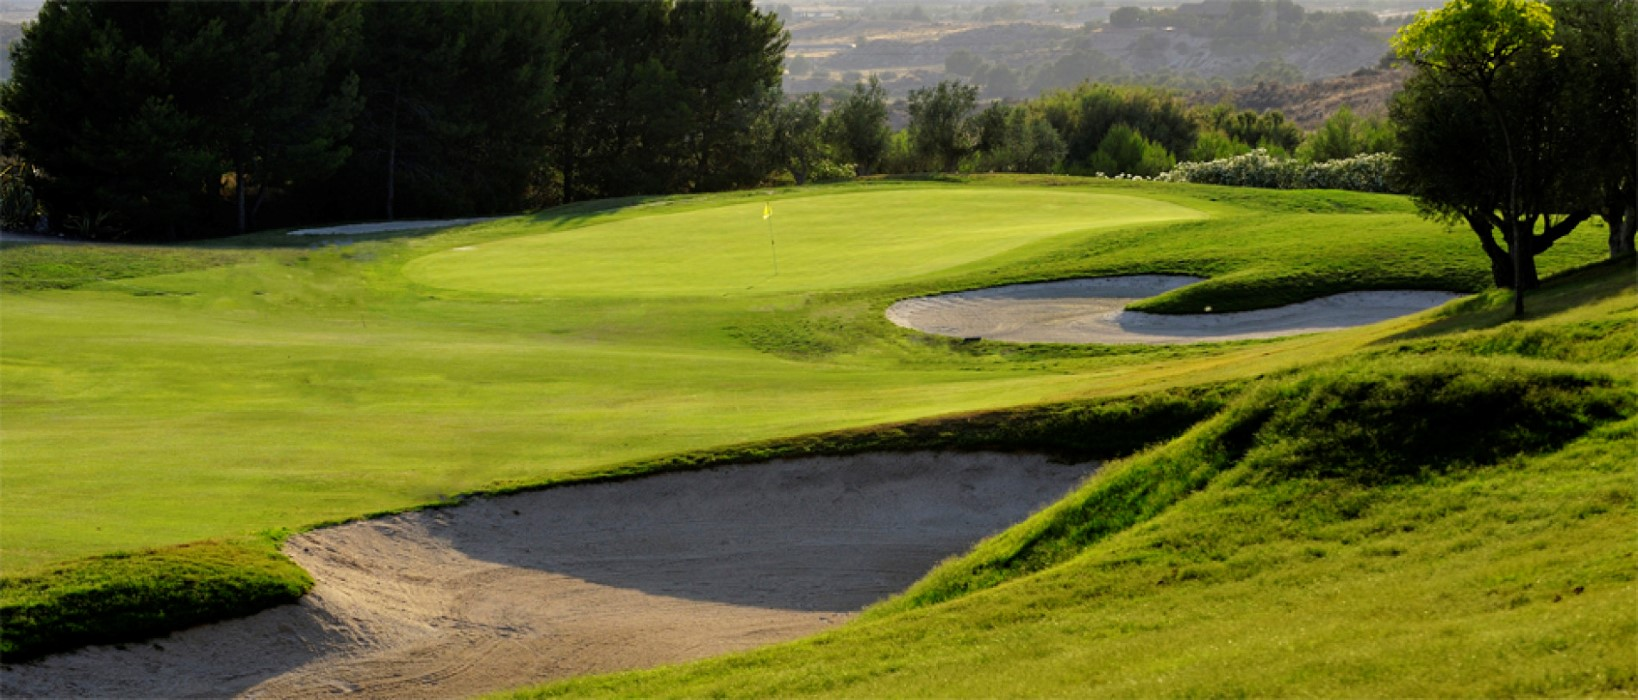 Golf Course Golf Altorreal in Murcia